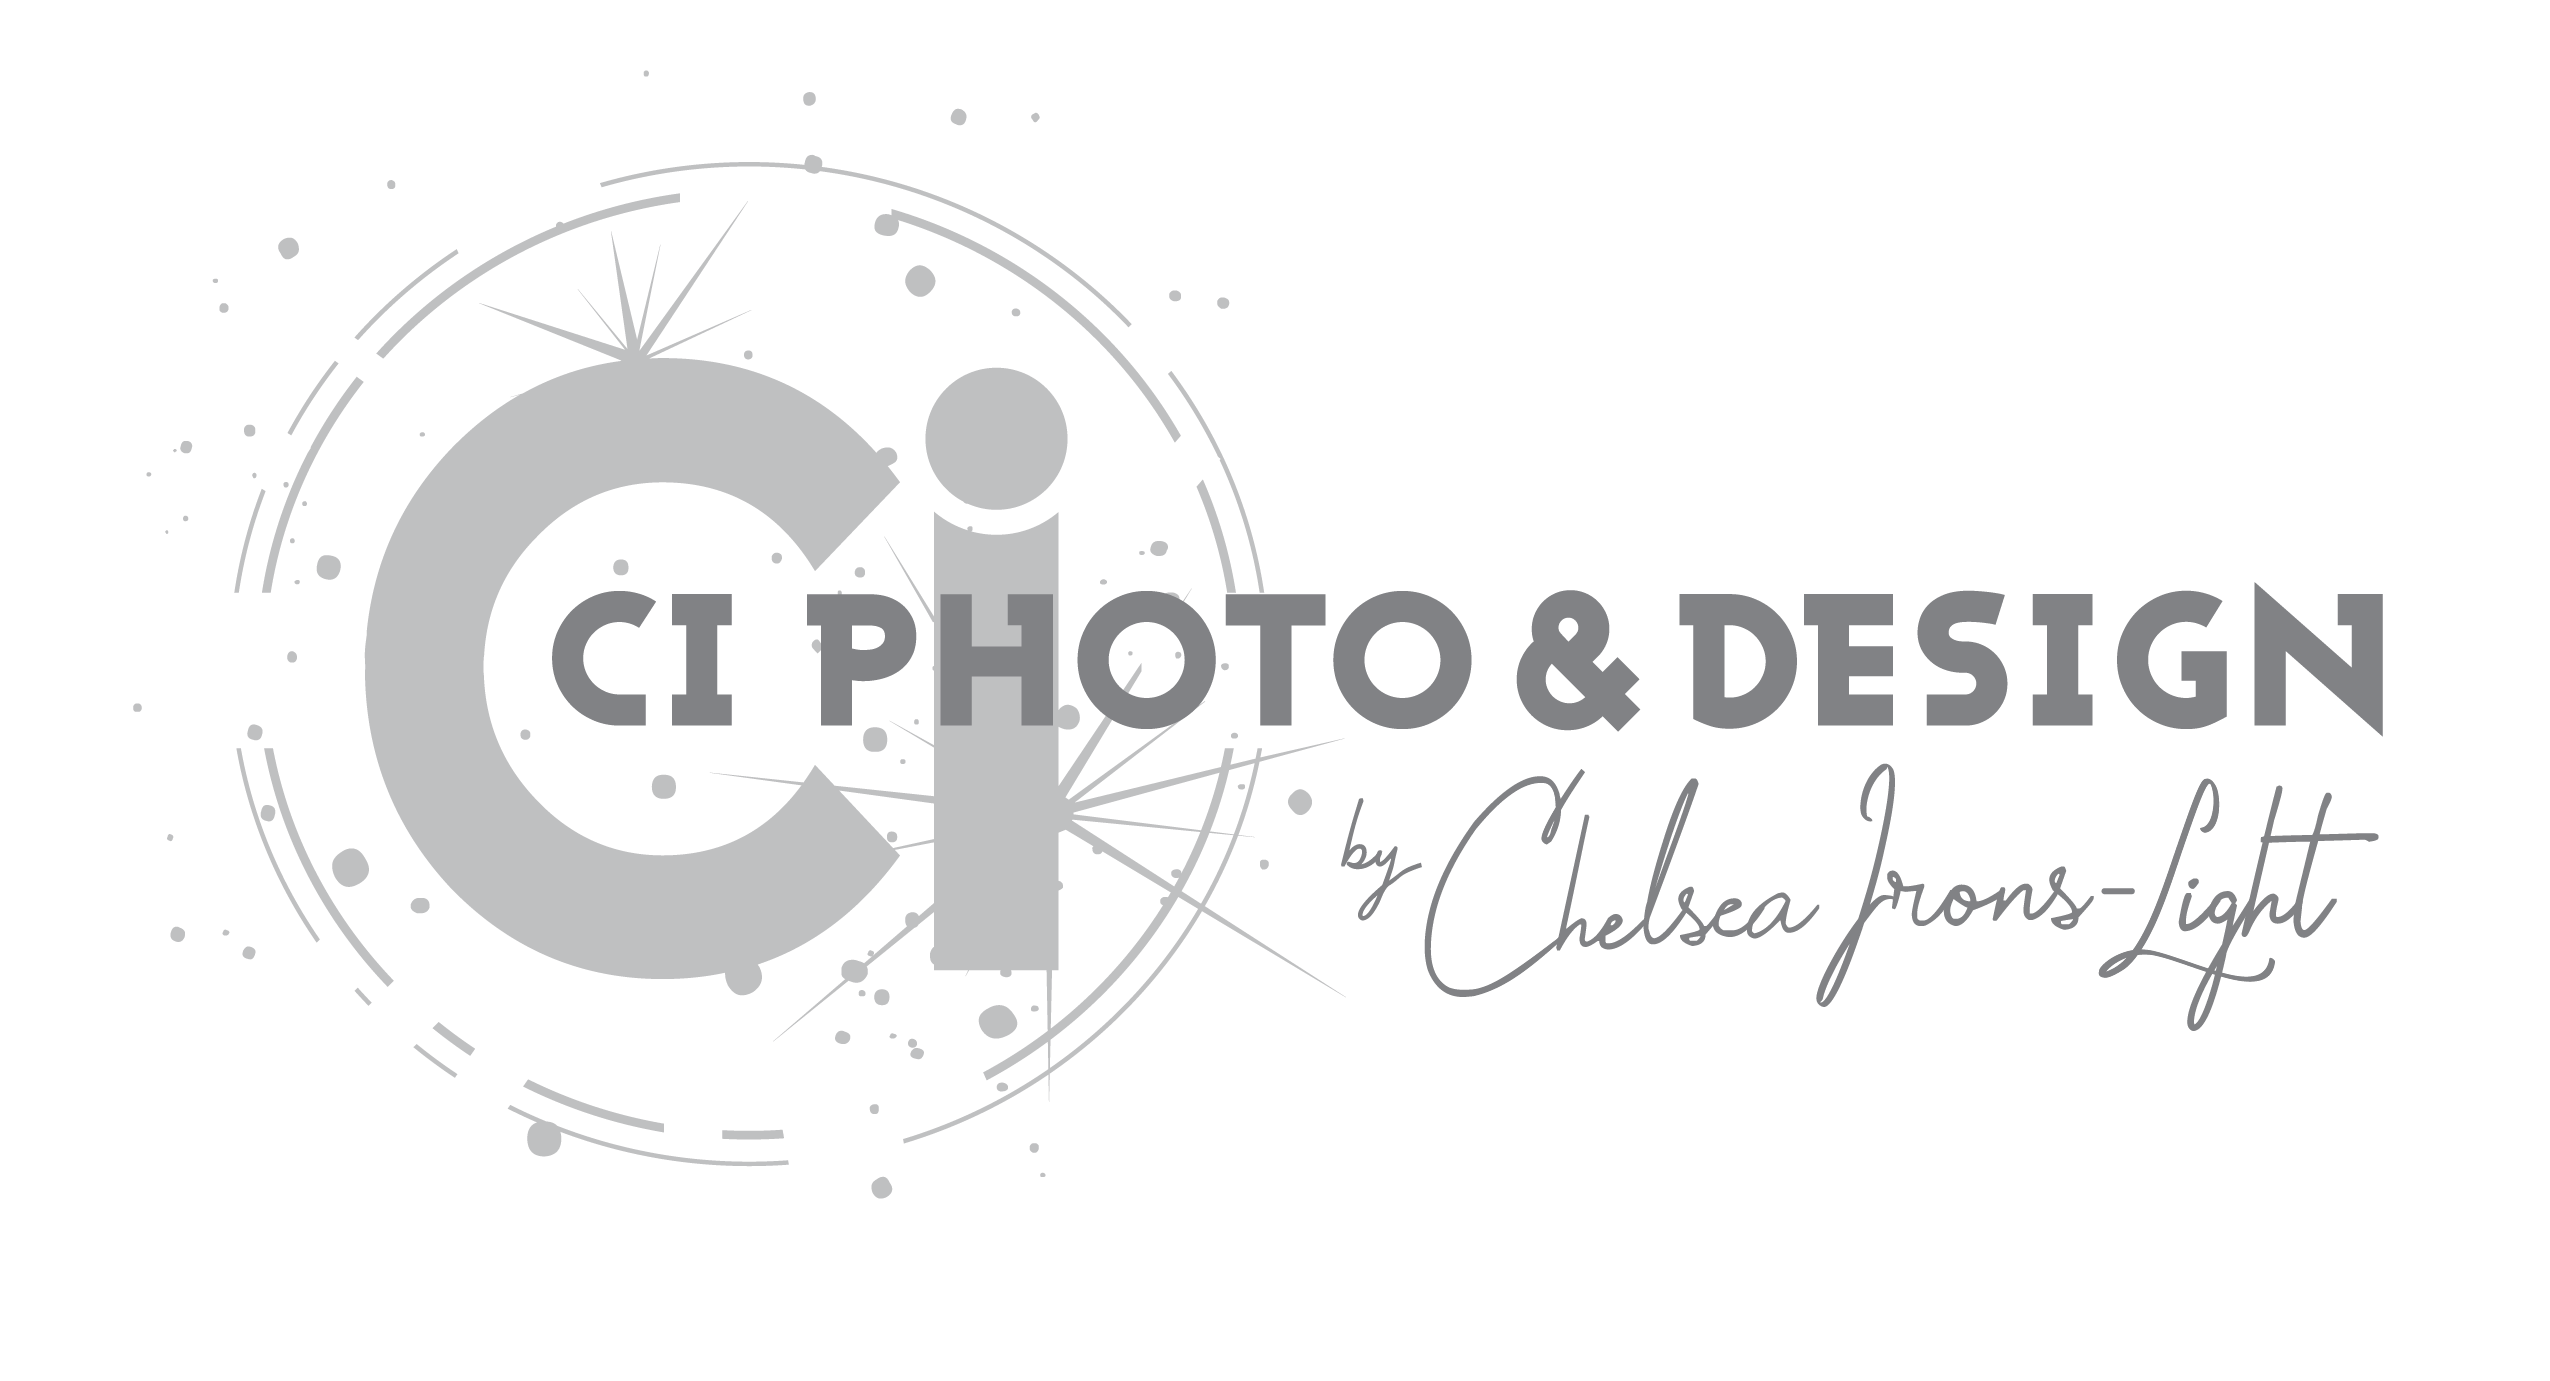 CI PHOTO & DESIGN